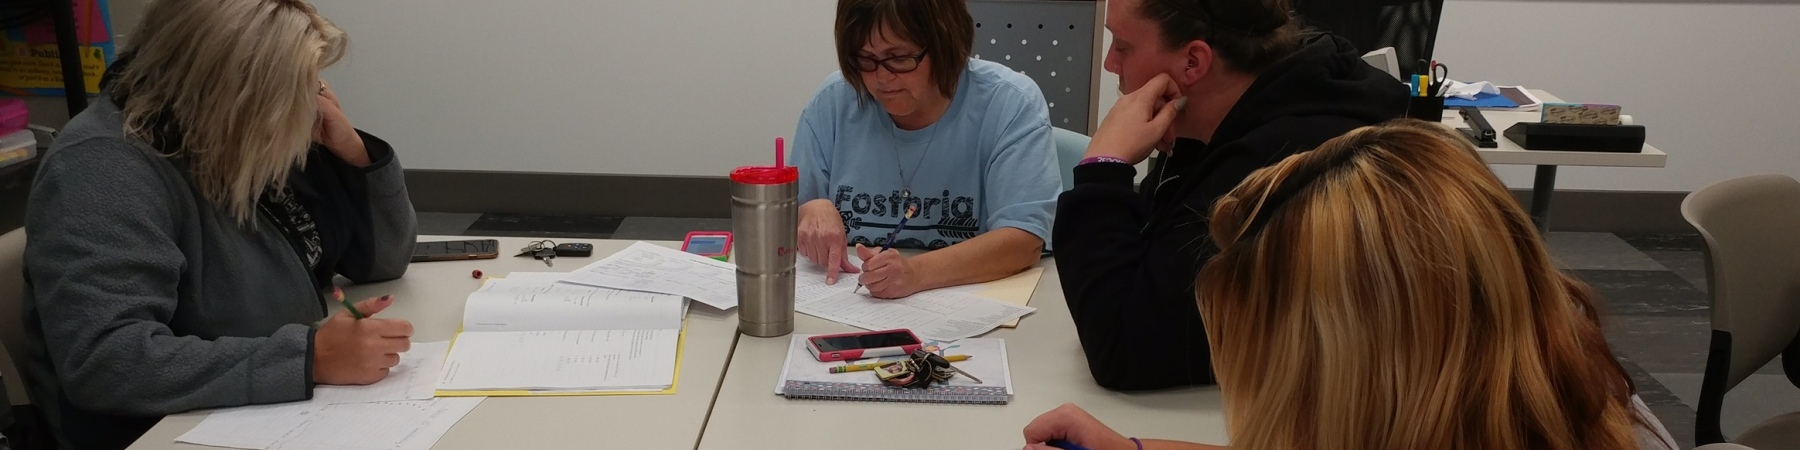 Adult Learning – Fostoria Learning Center